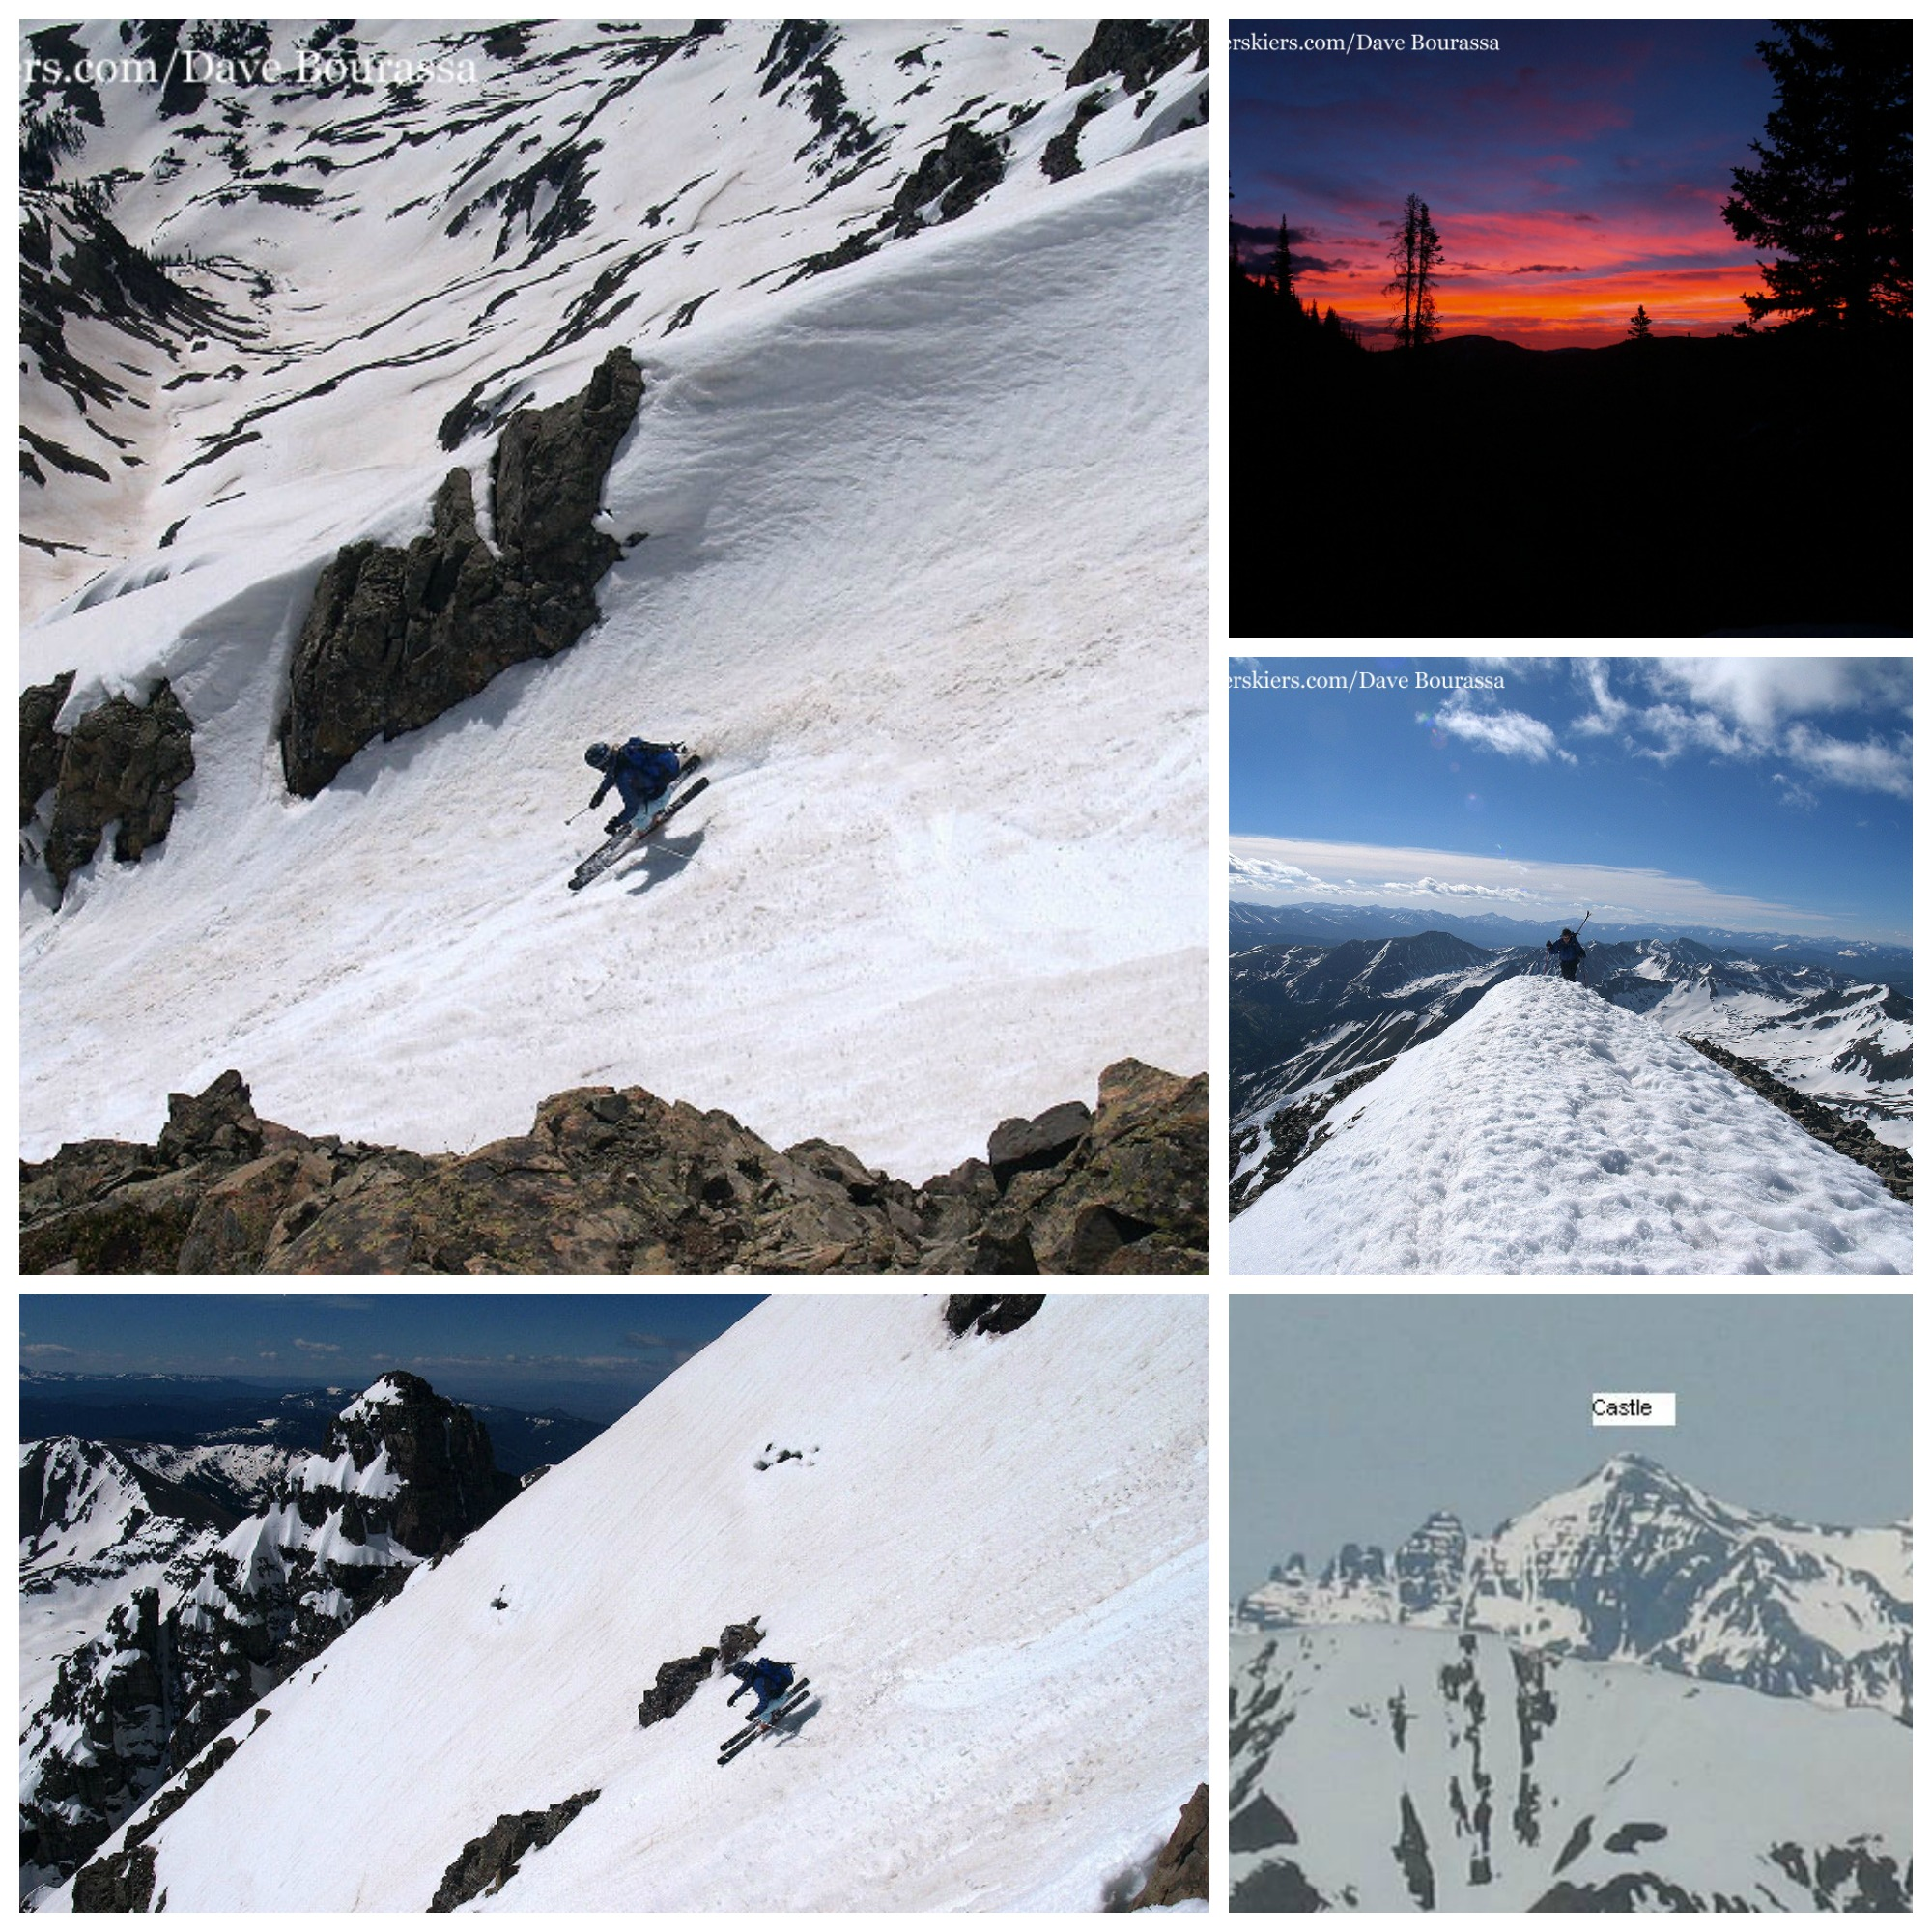 backcountry skiing Castle Peak, Colorado fourteener